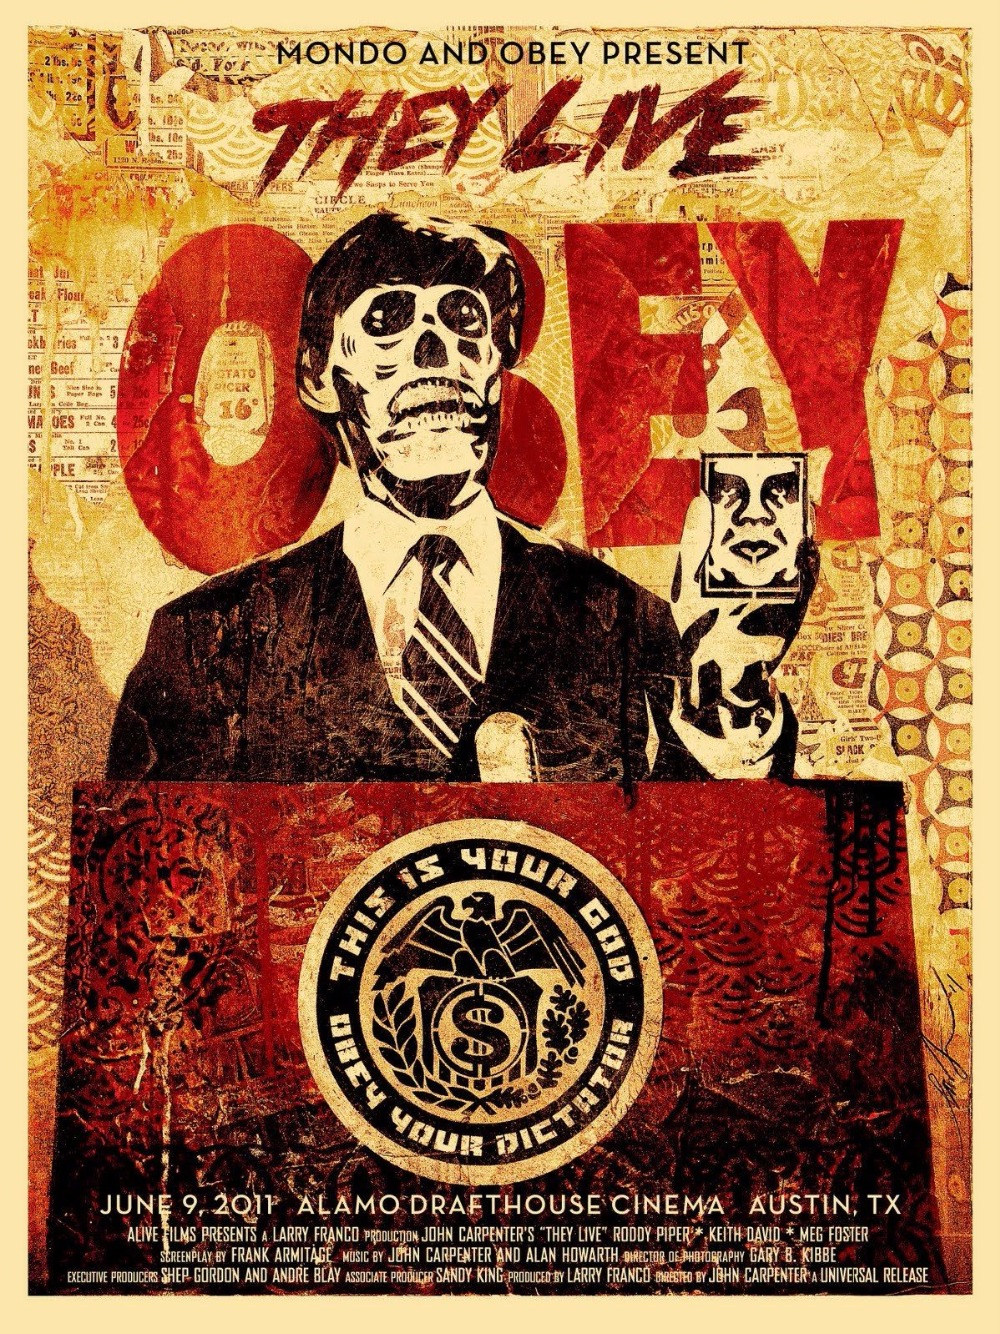 Obey Shepard Fairey They Live Mondo Amazing Silk Poster Art Bedroom Decoration 0687(China (Mainland))